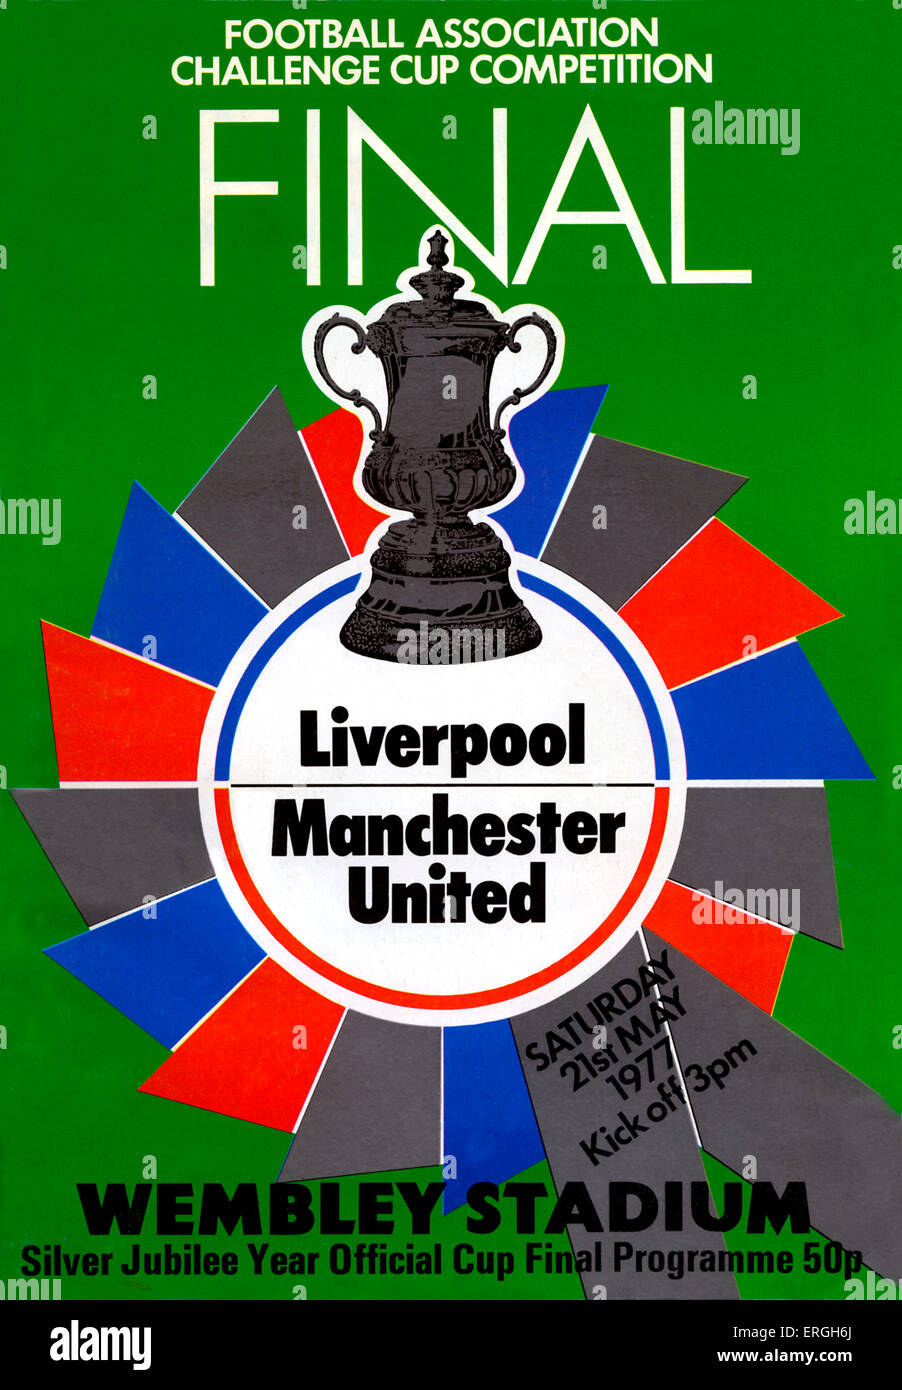 Football Association Challenge Cup Final, 21 May 1977. Silver Jubilee Year Official Programme. Football match between - Stock Image